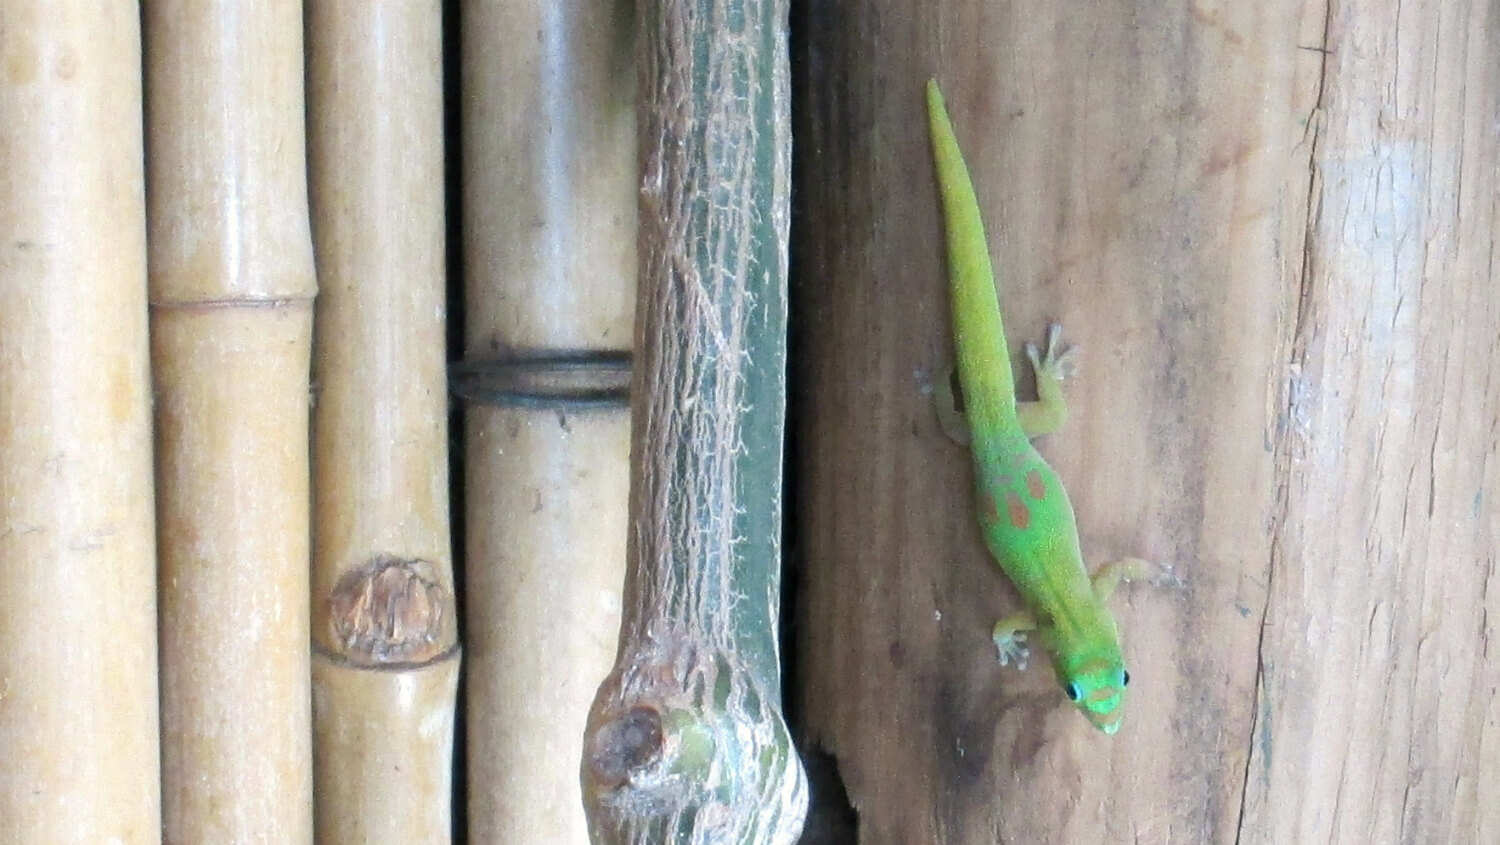 Gold Dust Day Gecko in the wild (well, on a bar wall...) in Kihei, Maui. They are not a native species, but have thrived in some areas of the state.